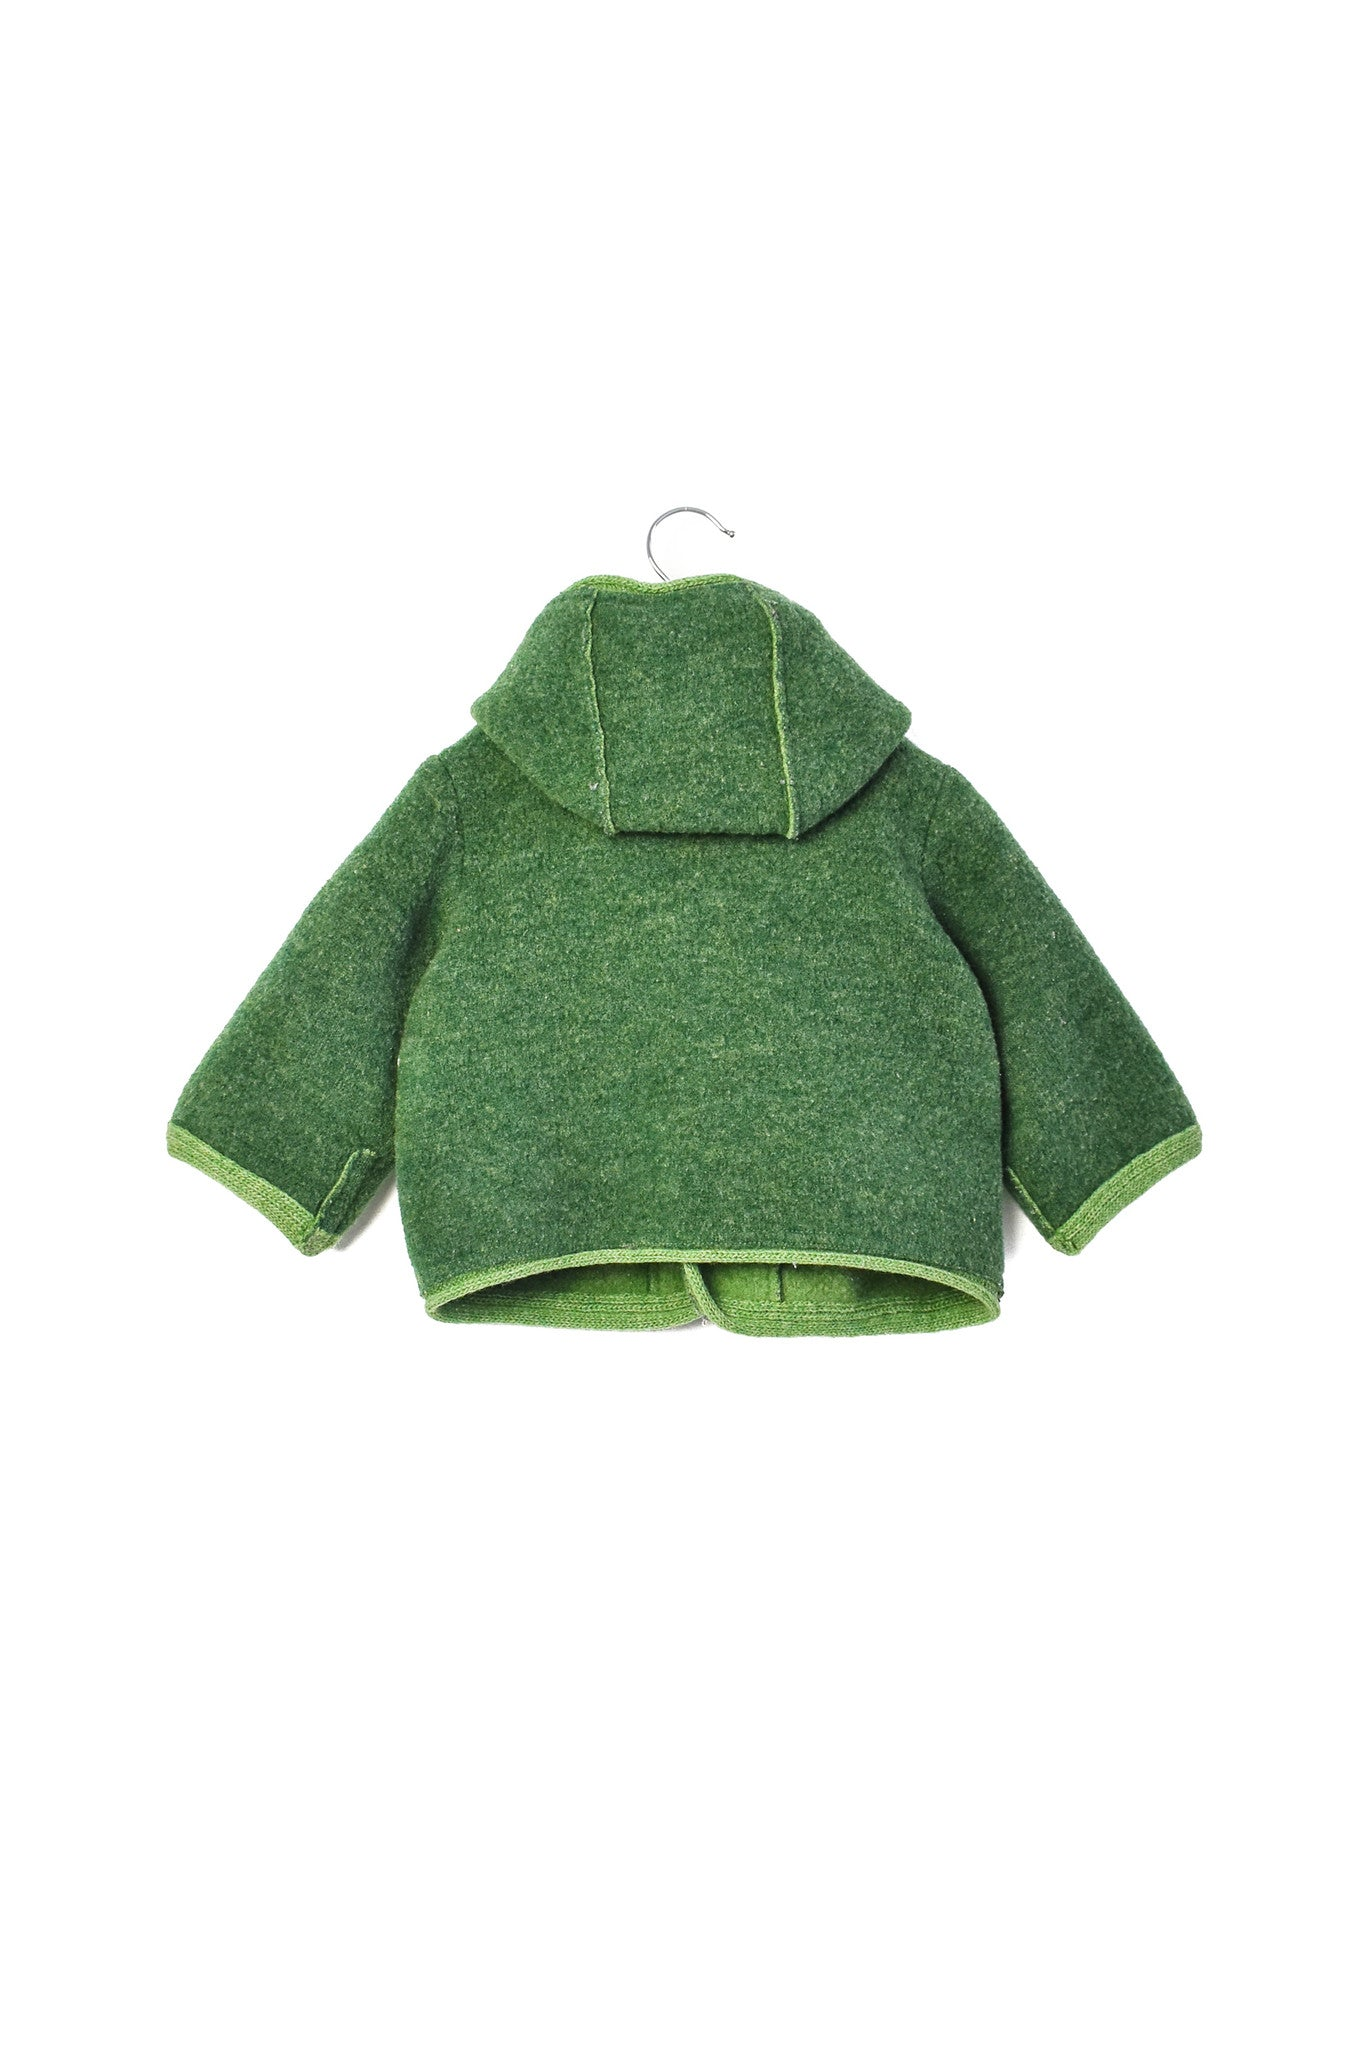 10003423 Isabella G. Baby~Coat 18M at Retykle